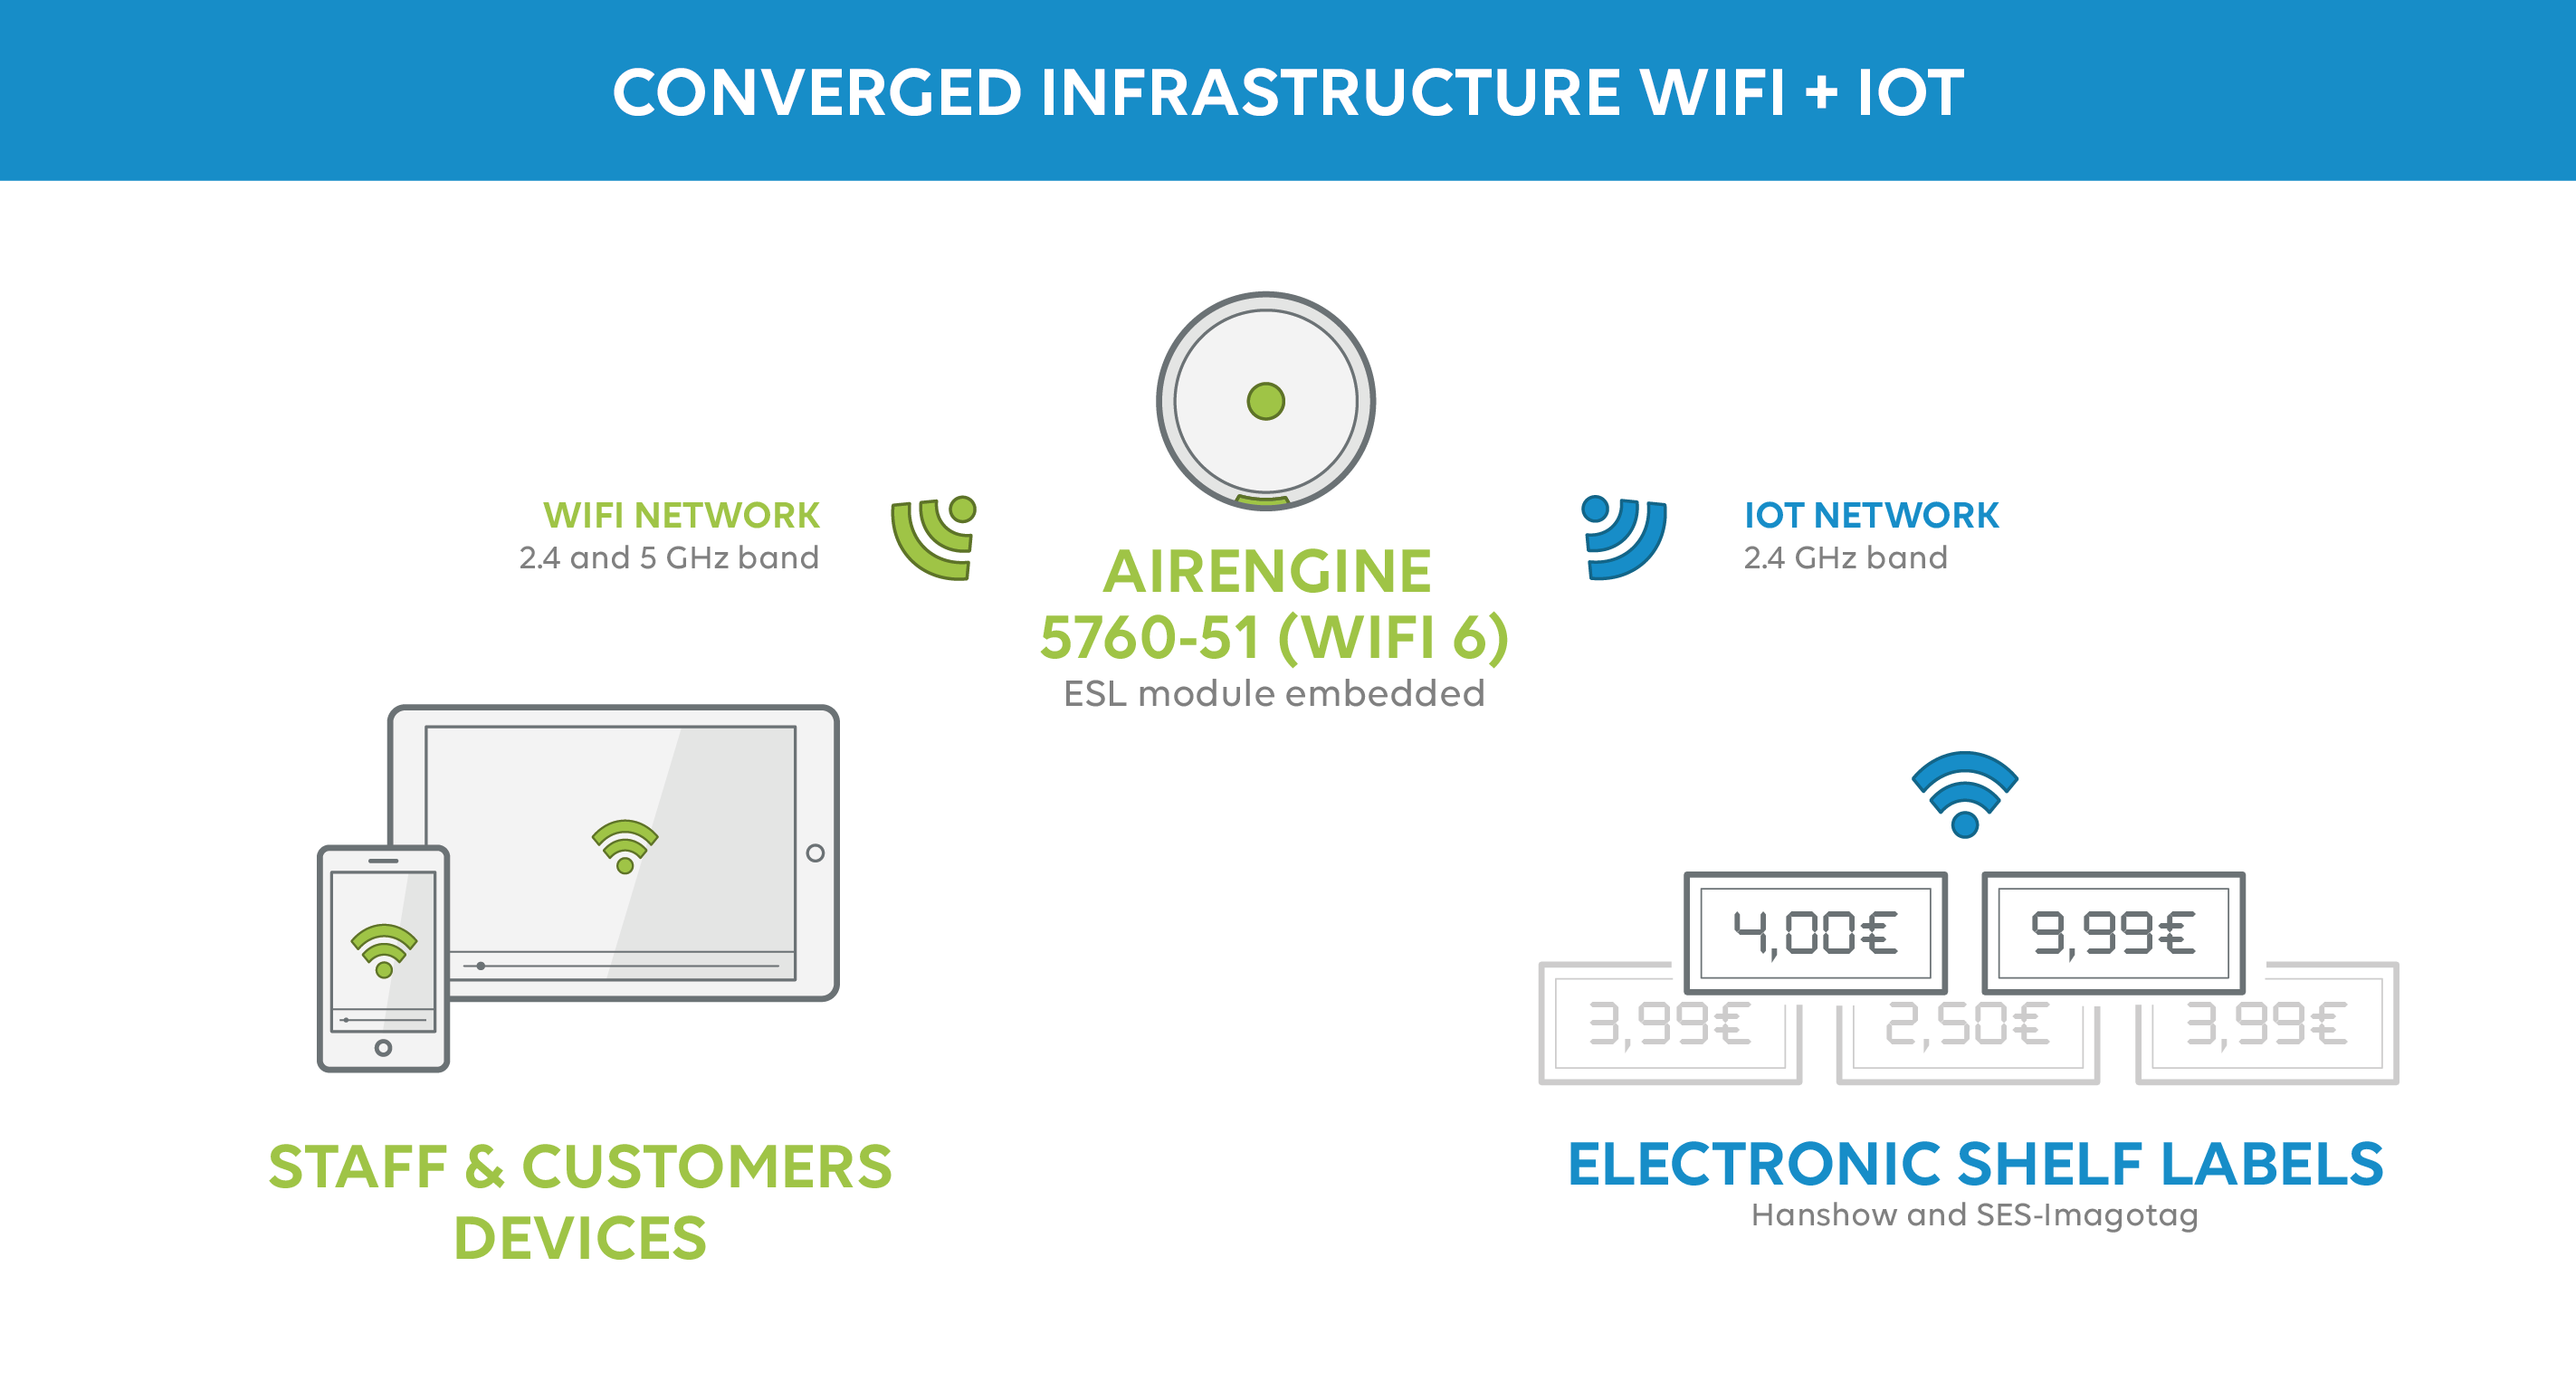 Converged retail WiFi and IoT infrastructures